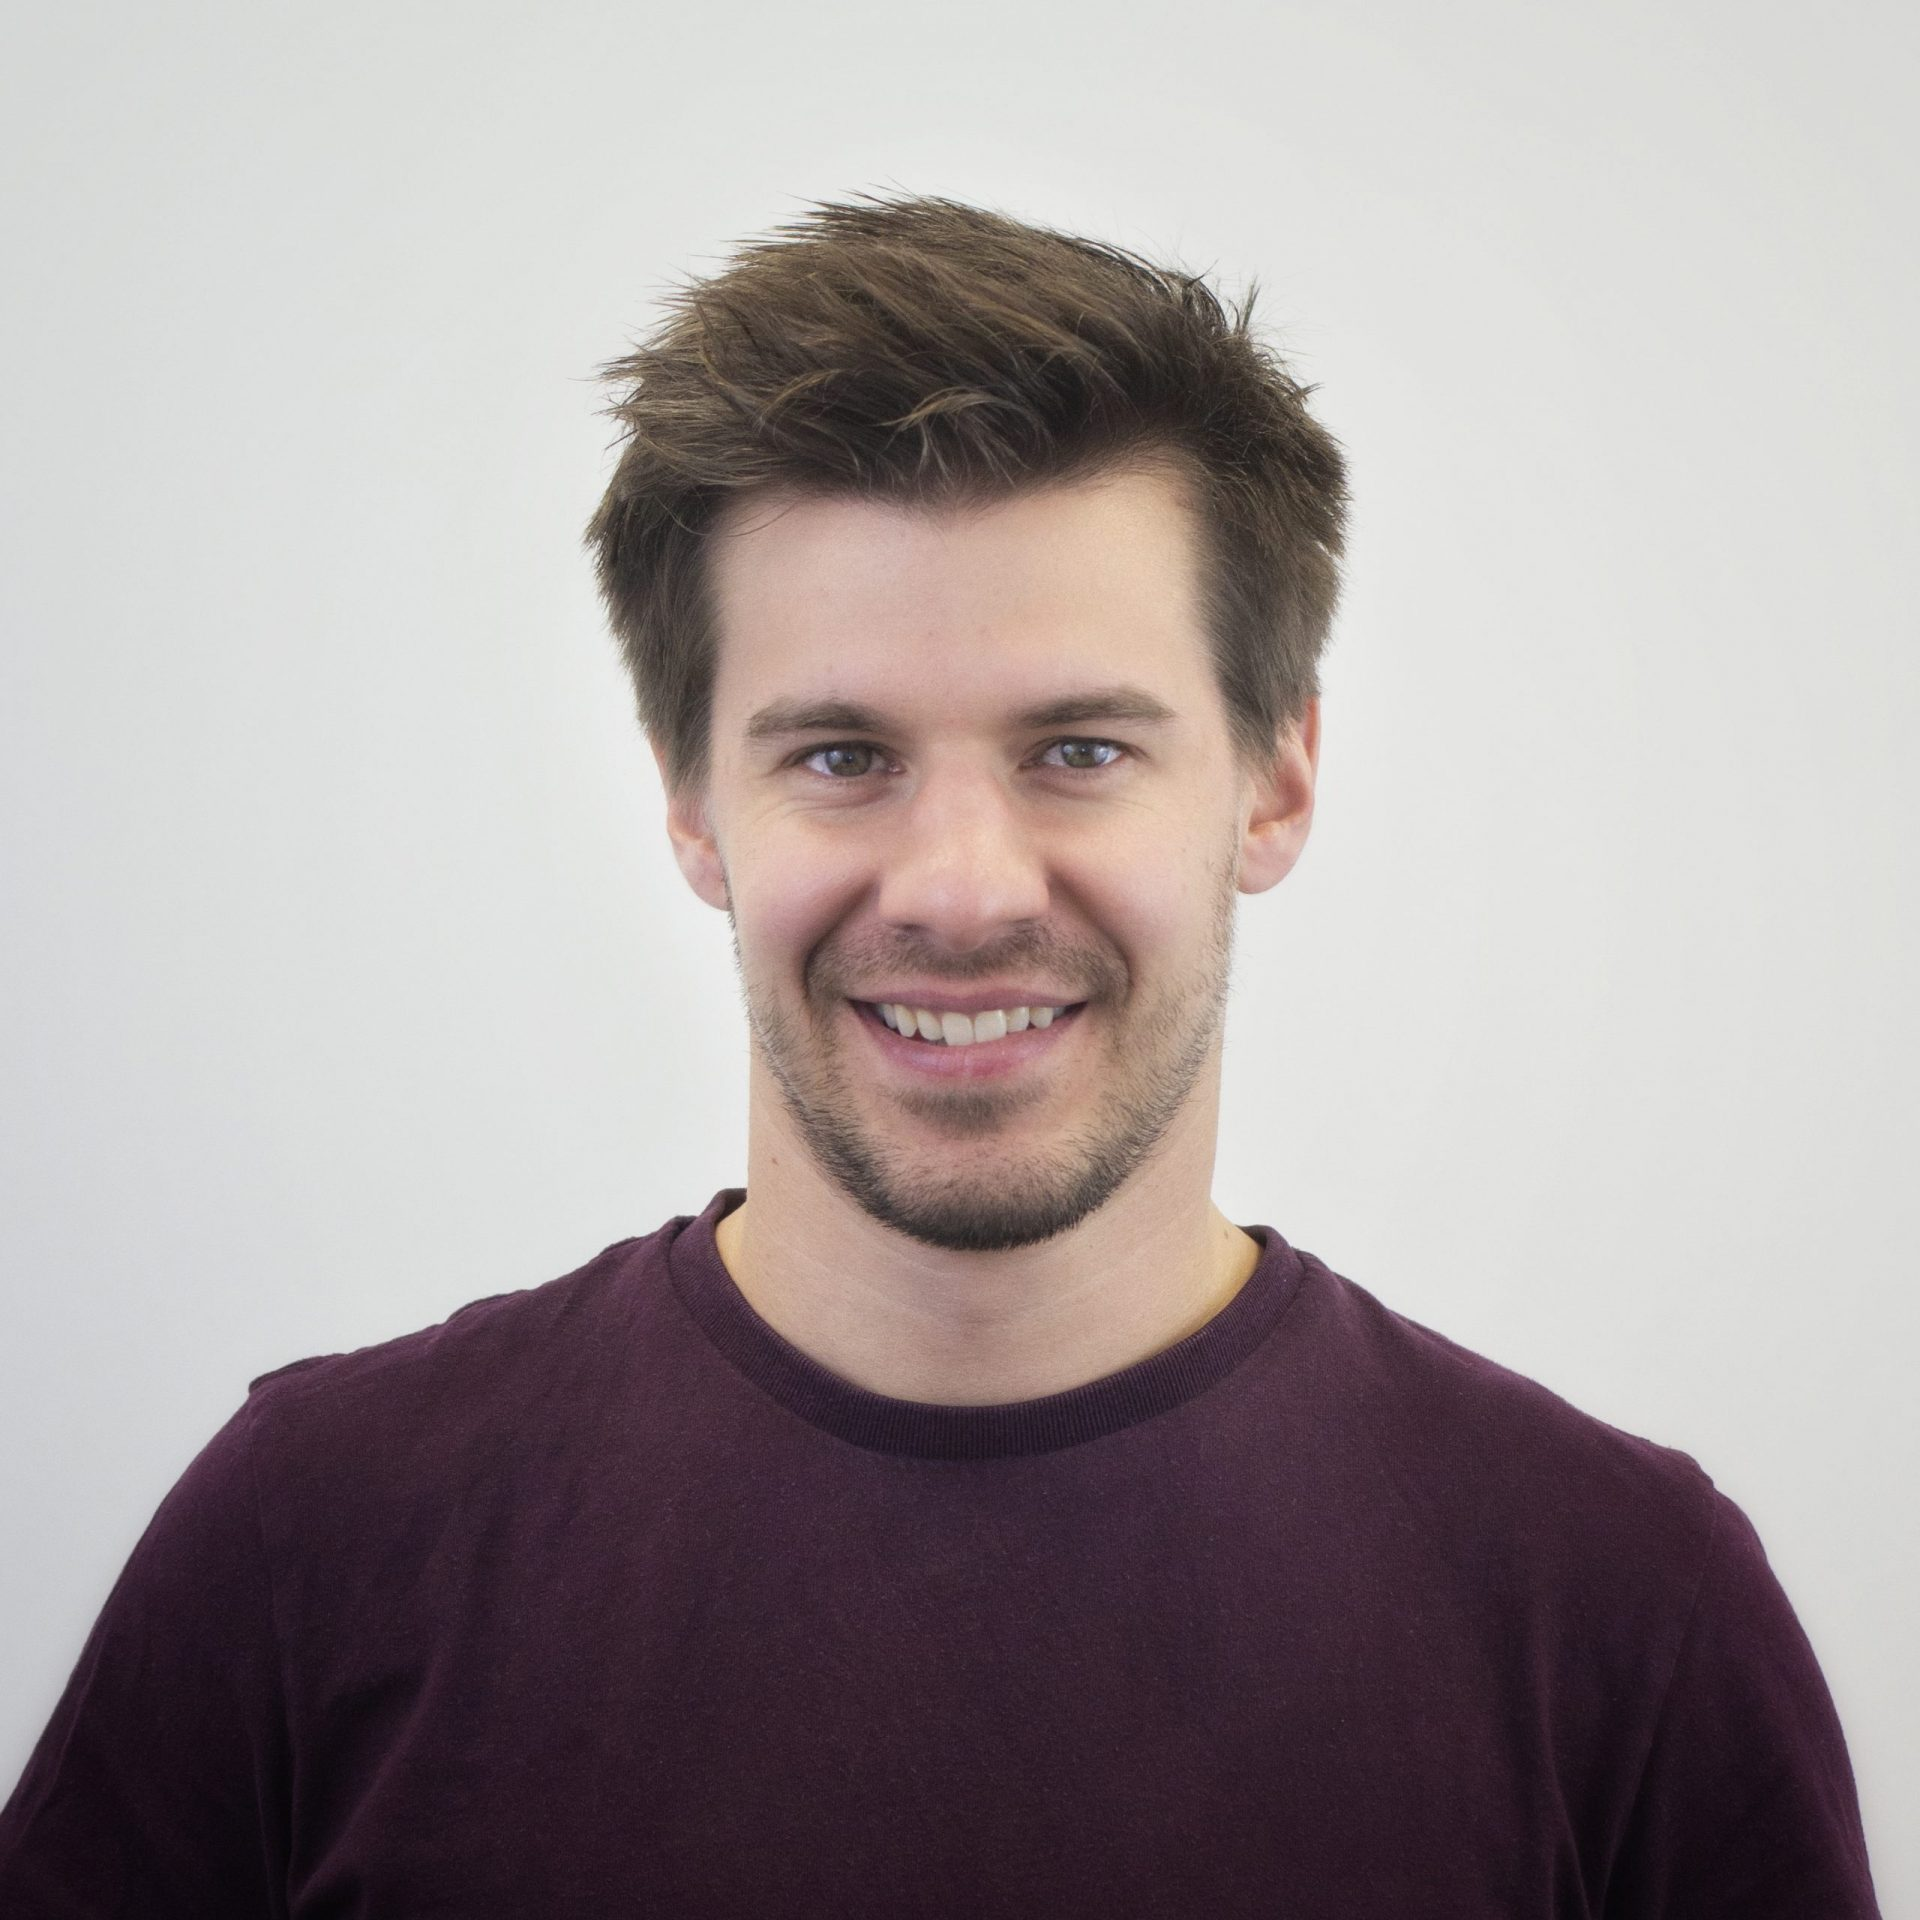 Kumovis co-CEO and co-founder Stefan Leonhardt